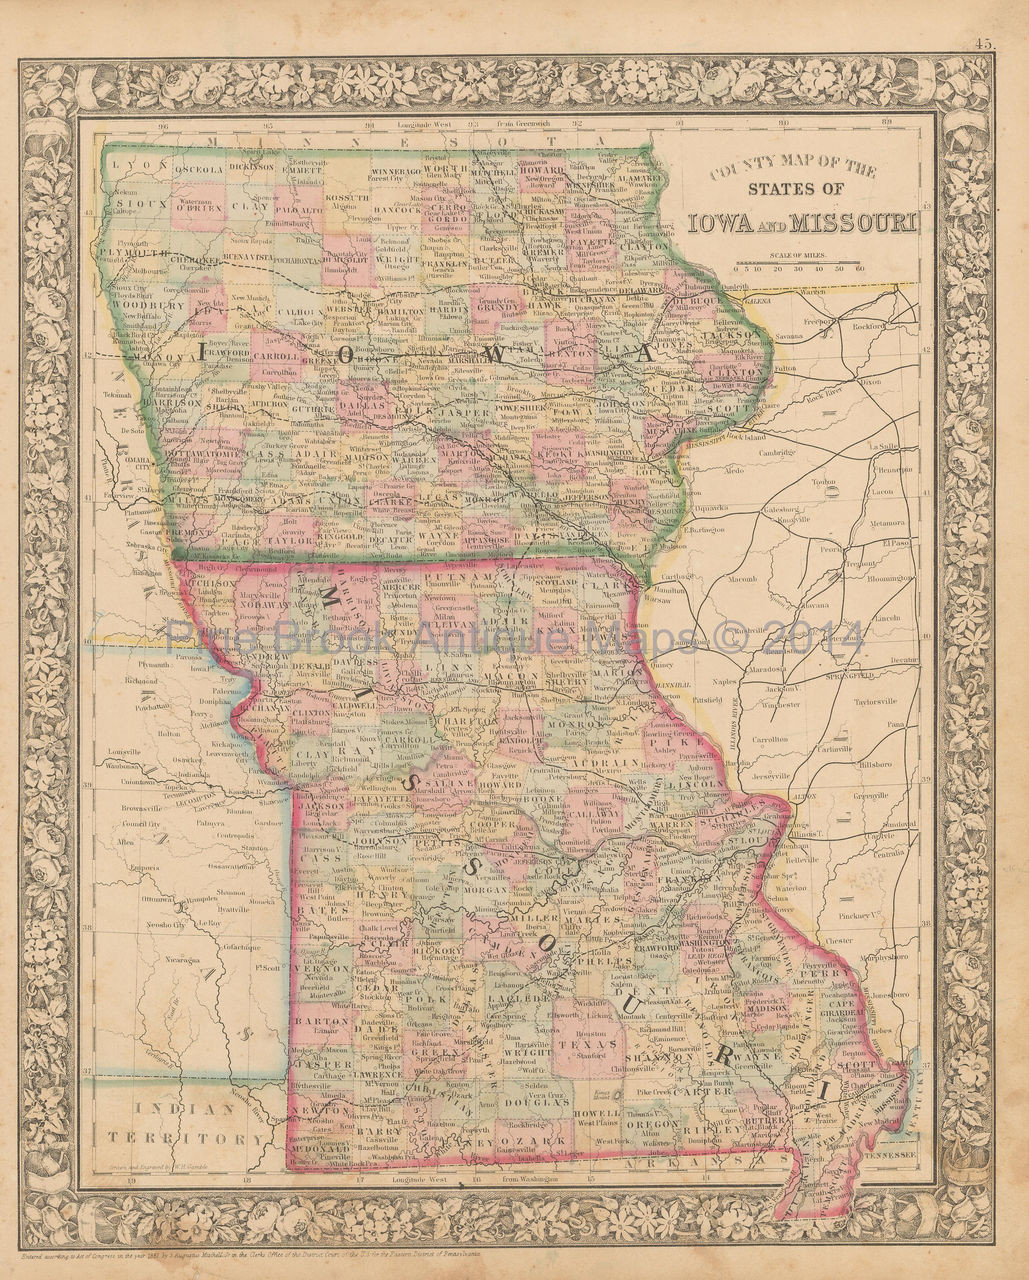 Iowa Missouri Antique Map Mitc 1866 on map of wisconsin, sioux center iowa, washington iowa, map of alabama, map of ohio, walnut iowa, altoona iowa, fremont iowa, ottumwa iowa, eldora iowa, decorah iowa, adel iowa, dyersville iowa, map of mississippi, toledo iowa, fort madison iowa, early iowa, airports in iowa, map of maine, red oak iowa, map of pennsylvania, road map iowa, adair iowa, google maps iowa, cities in iowa, map of kentucky, hull iowa,